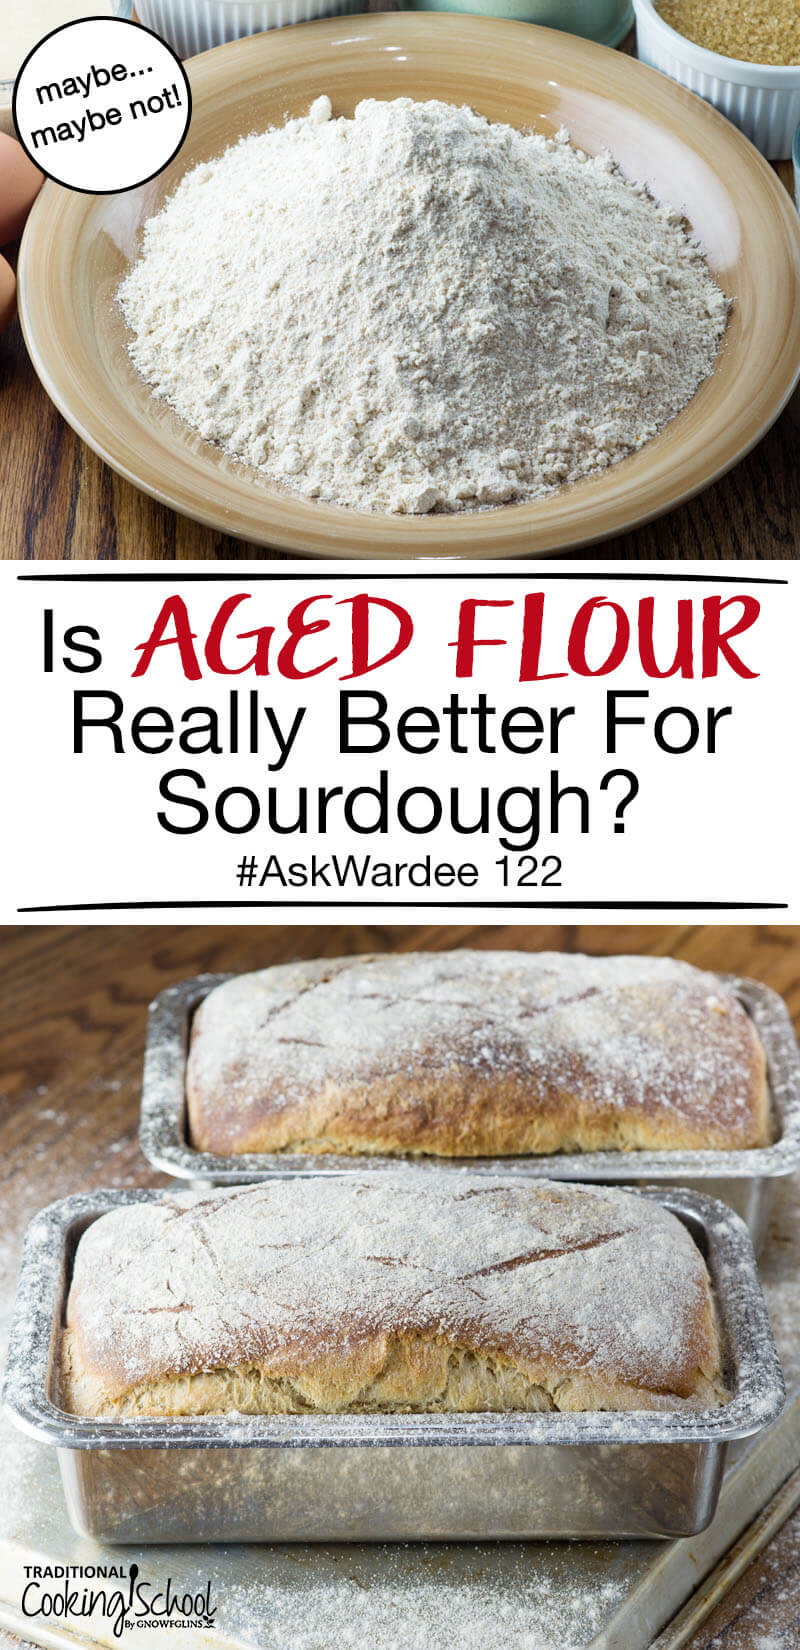 "photo collage of making bread, with a plate of flour and two loaves of bread, and text overlay: ""Is Aged Flour Really Better For Sourdough? #AskWardee 122"""